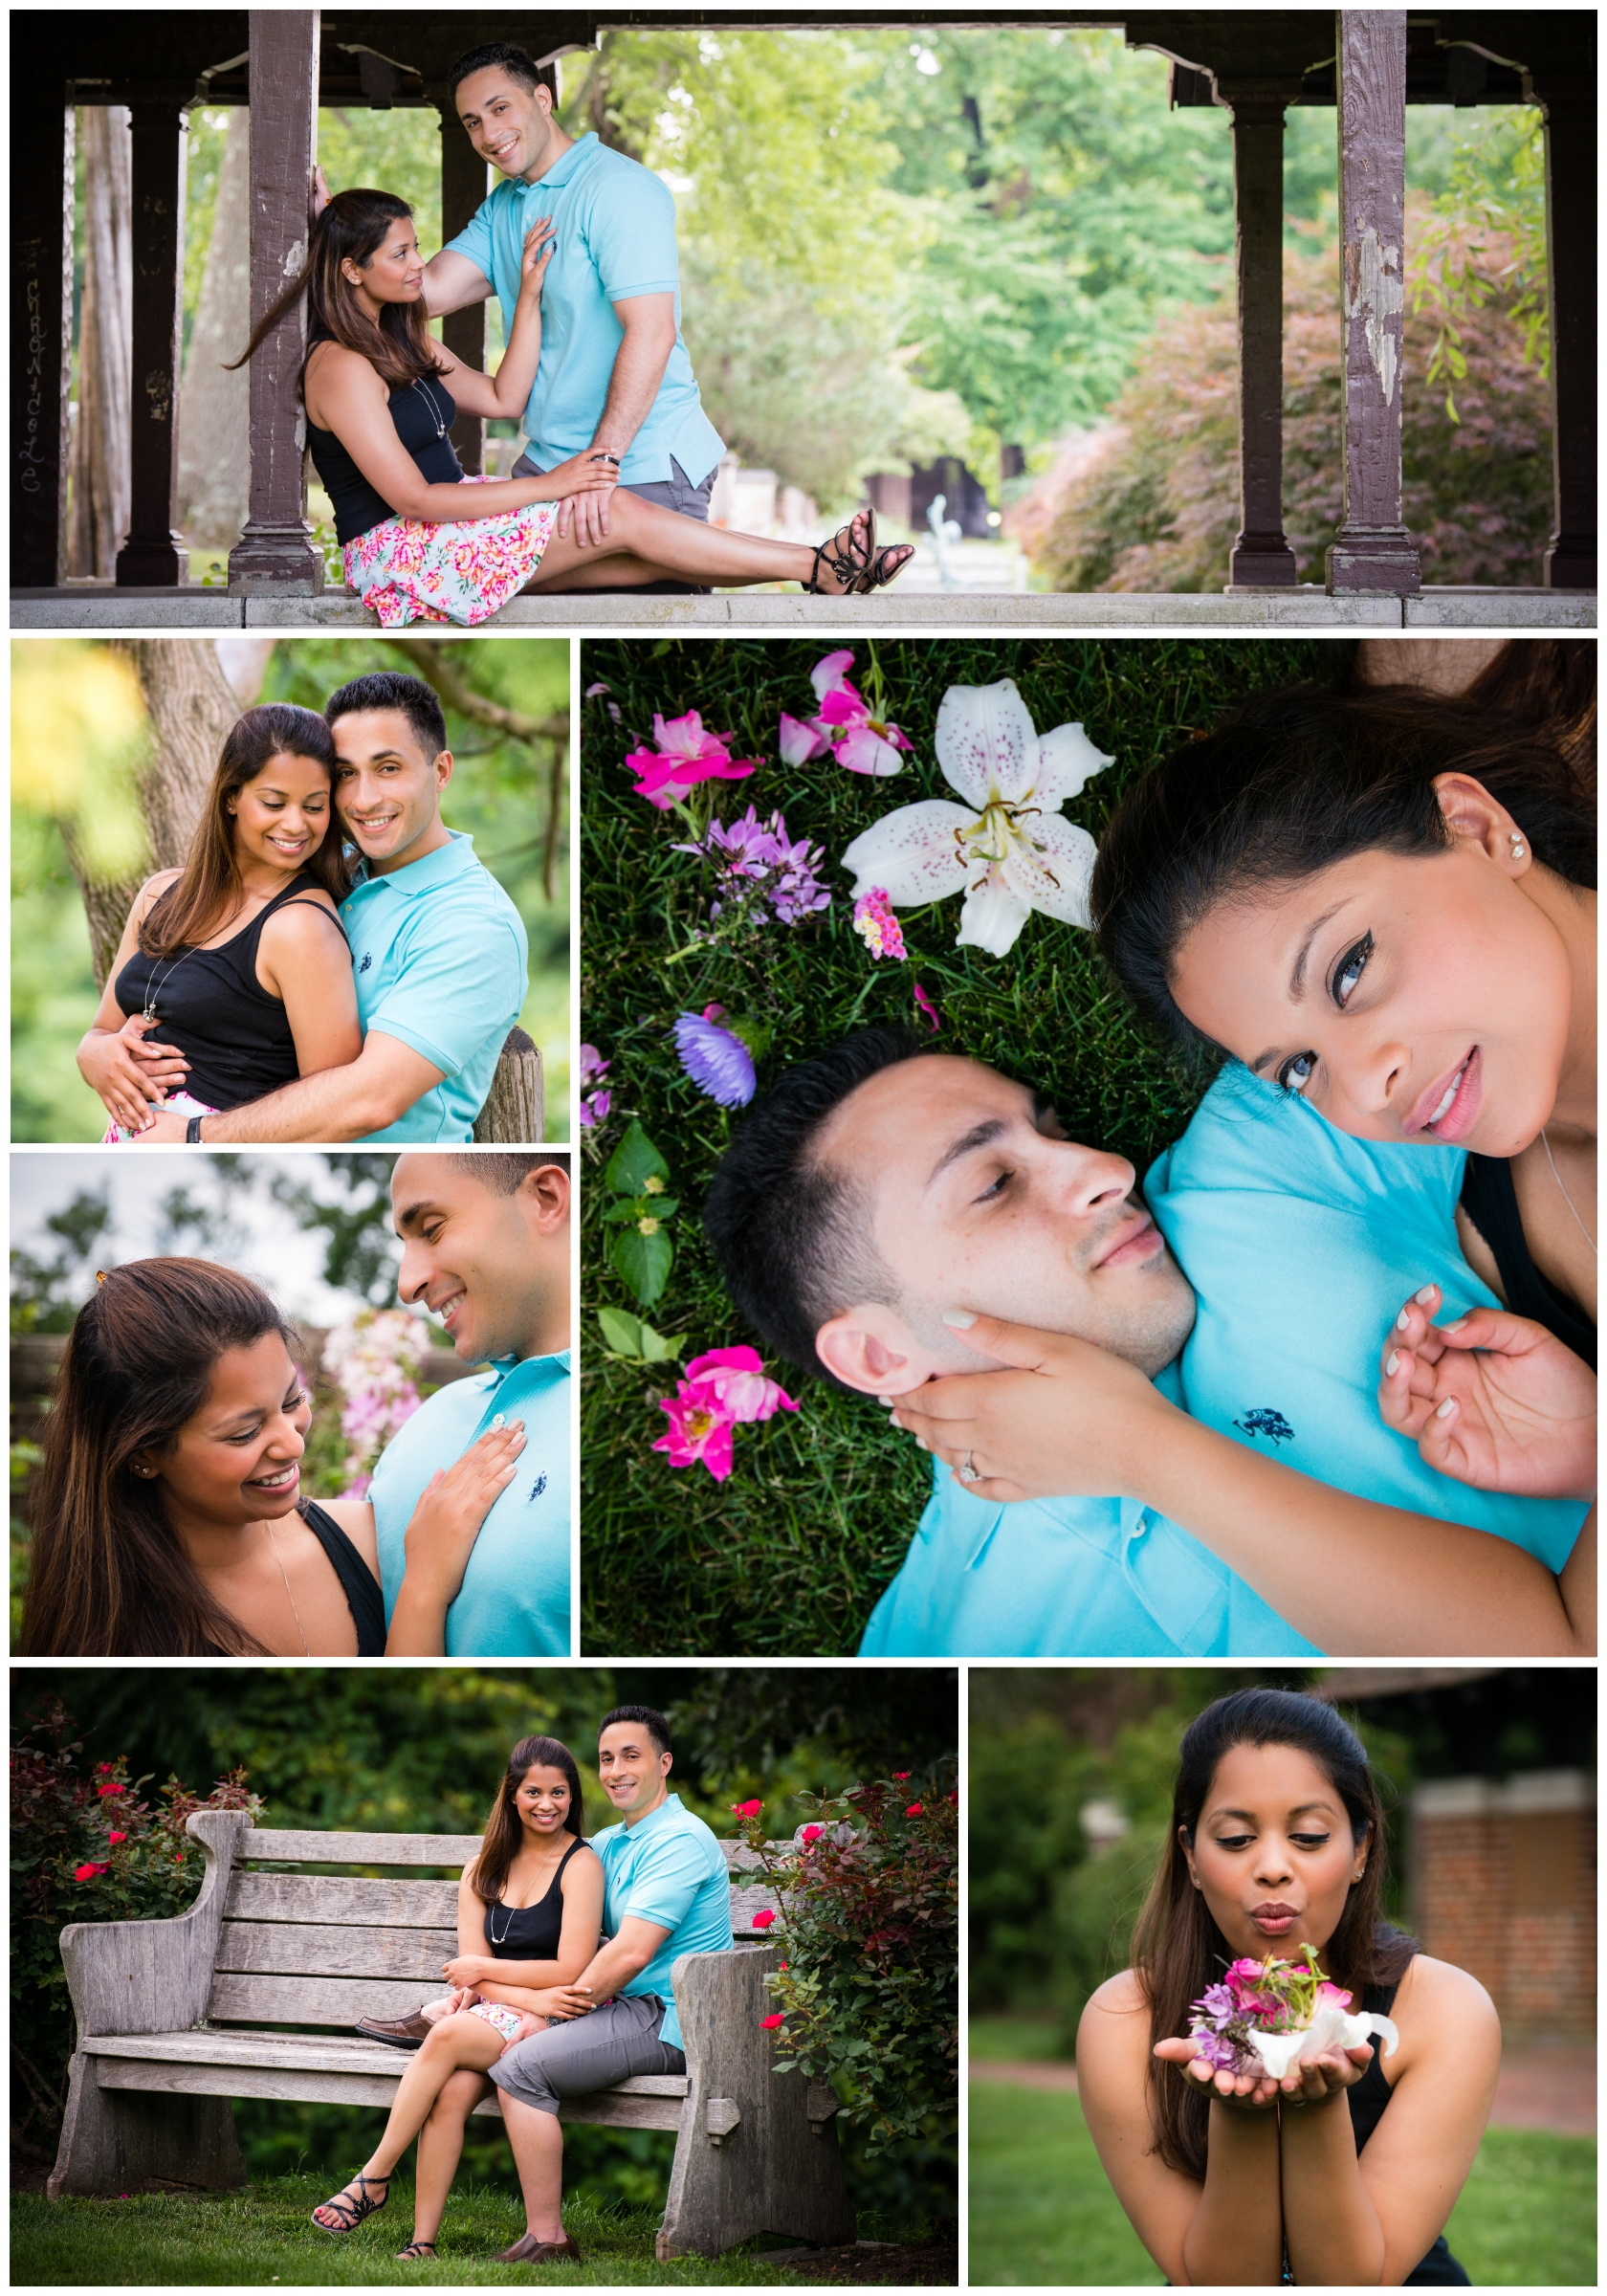 There were so many beautiful spots at Waveny Park to capture that garden theme for this couples session.